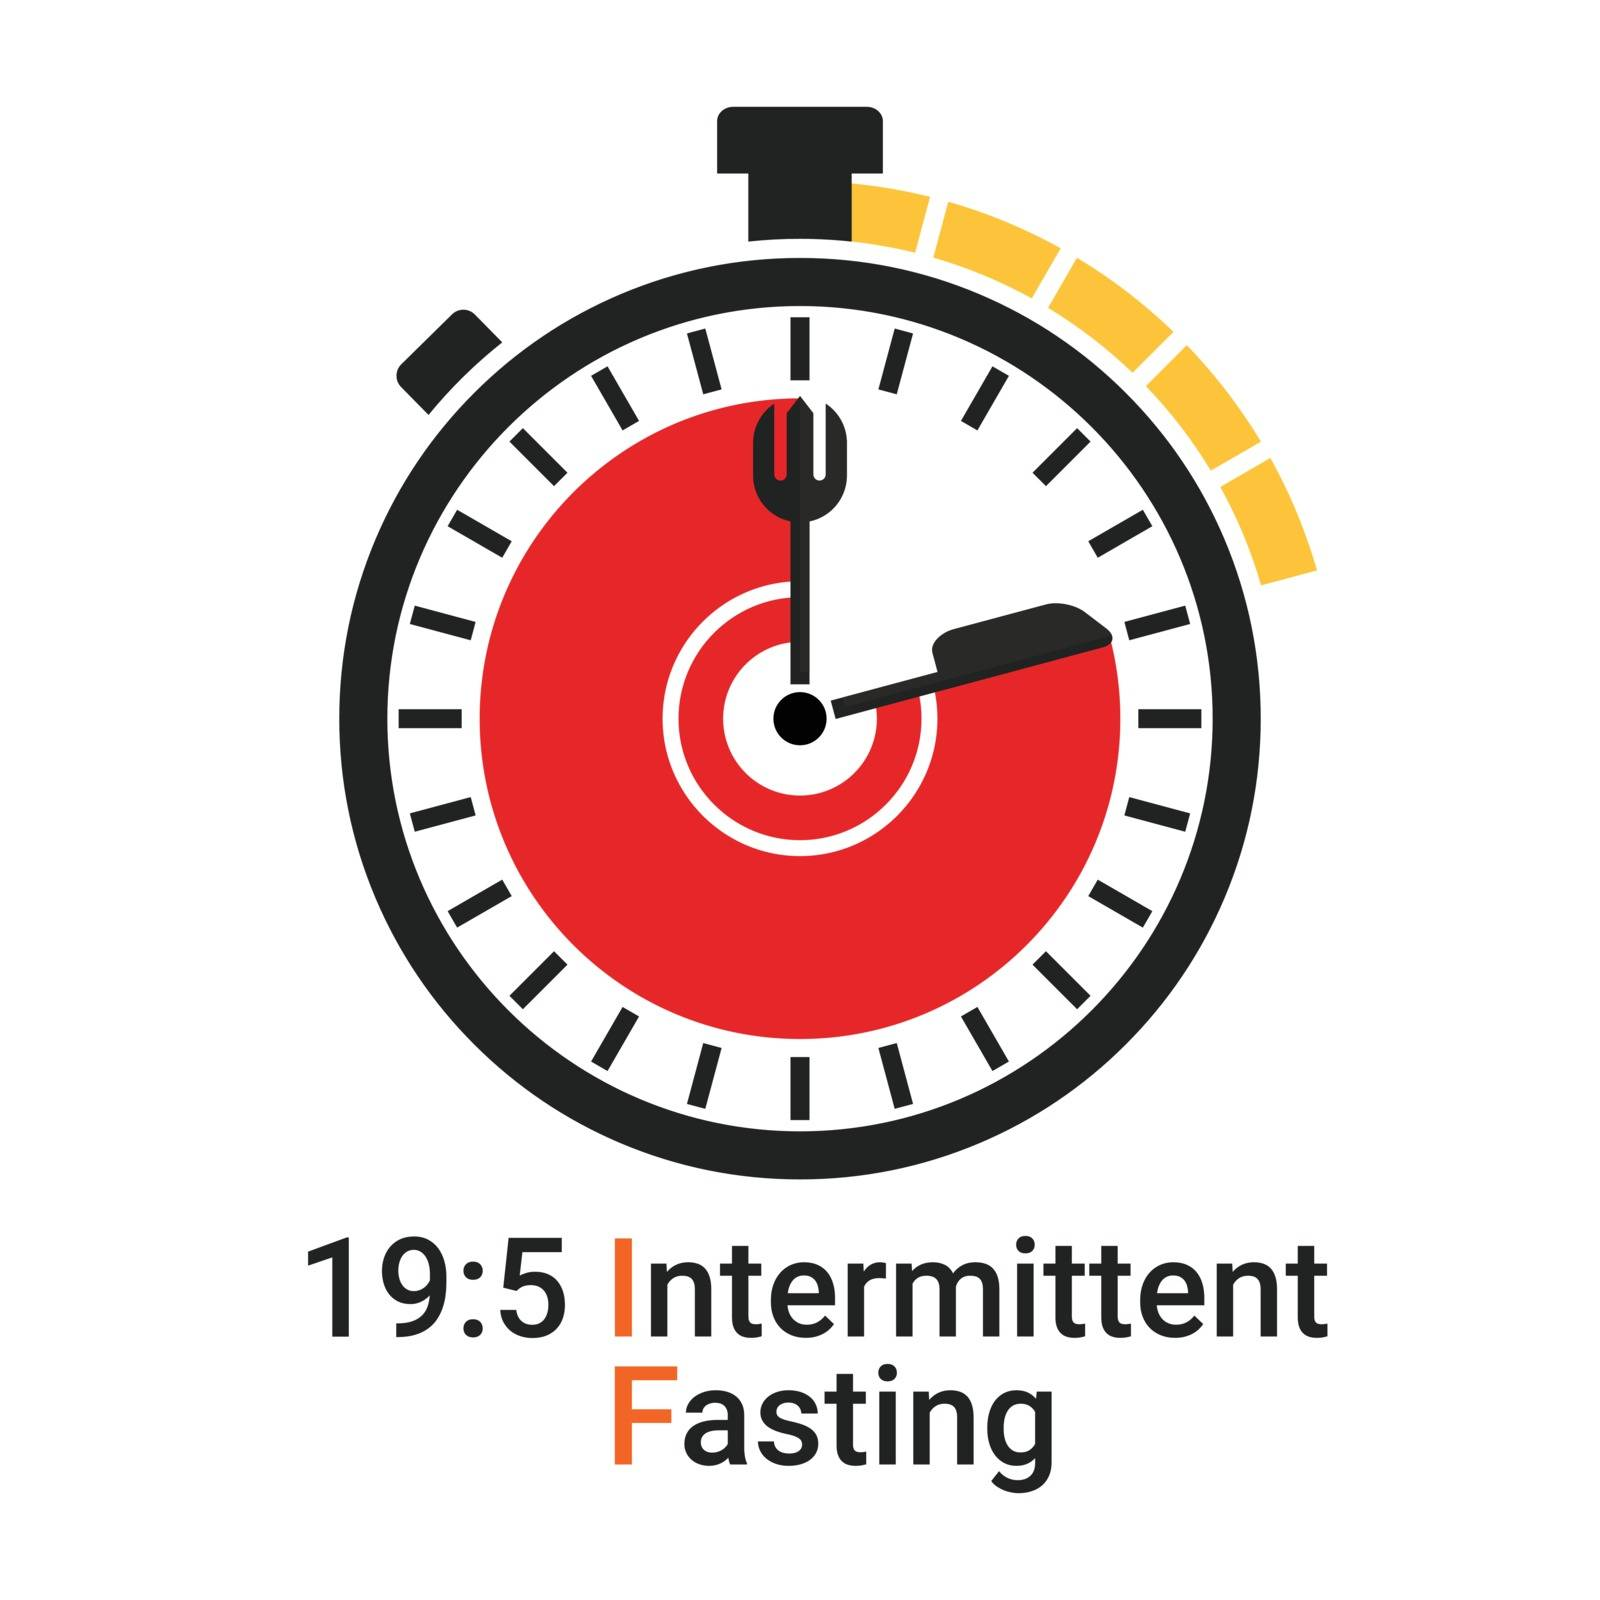 19/5 Intermittent Fasting (IF) is a form of time restricted fasting eating. Daily eating and fasting period for loss weight diet concept. Vector illustration of stop clock face symbol isolated on white background